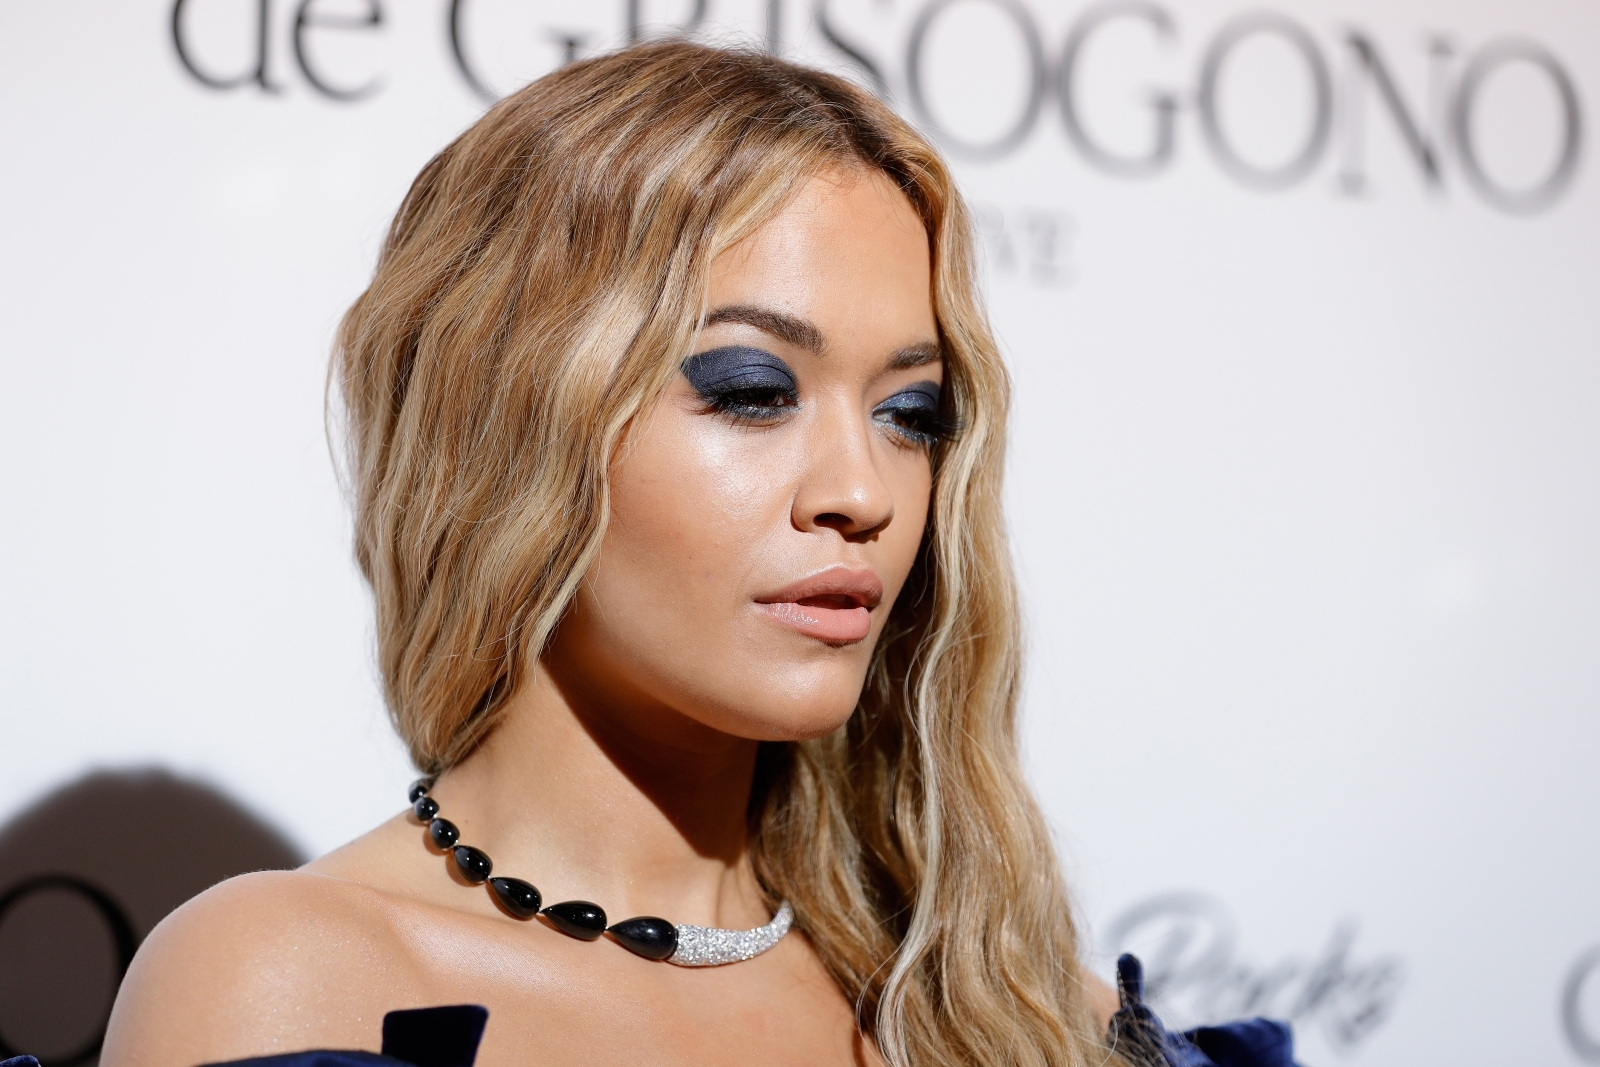 Braless Rita Ora Flashes Cleavage In A Sexy Instagram -9506